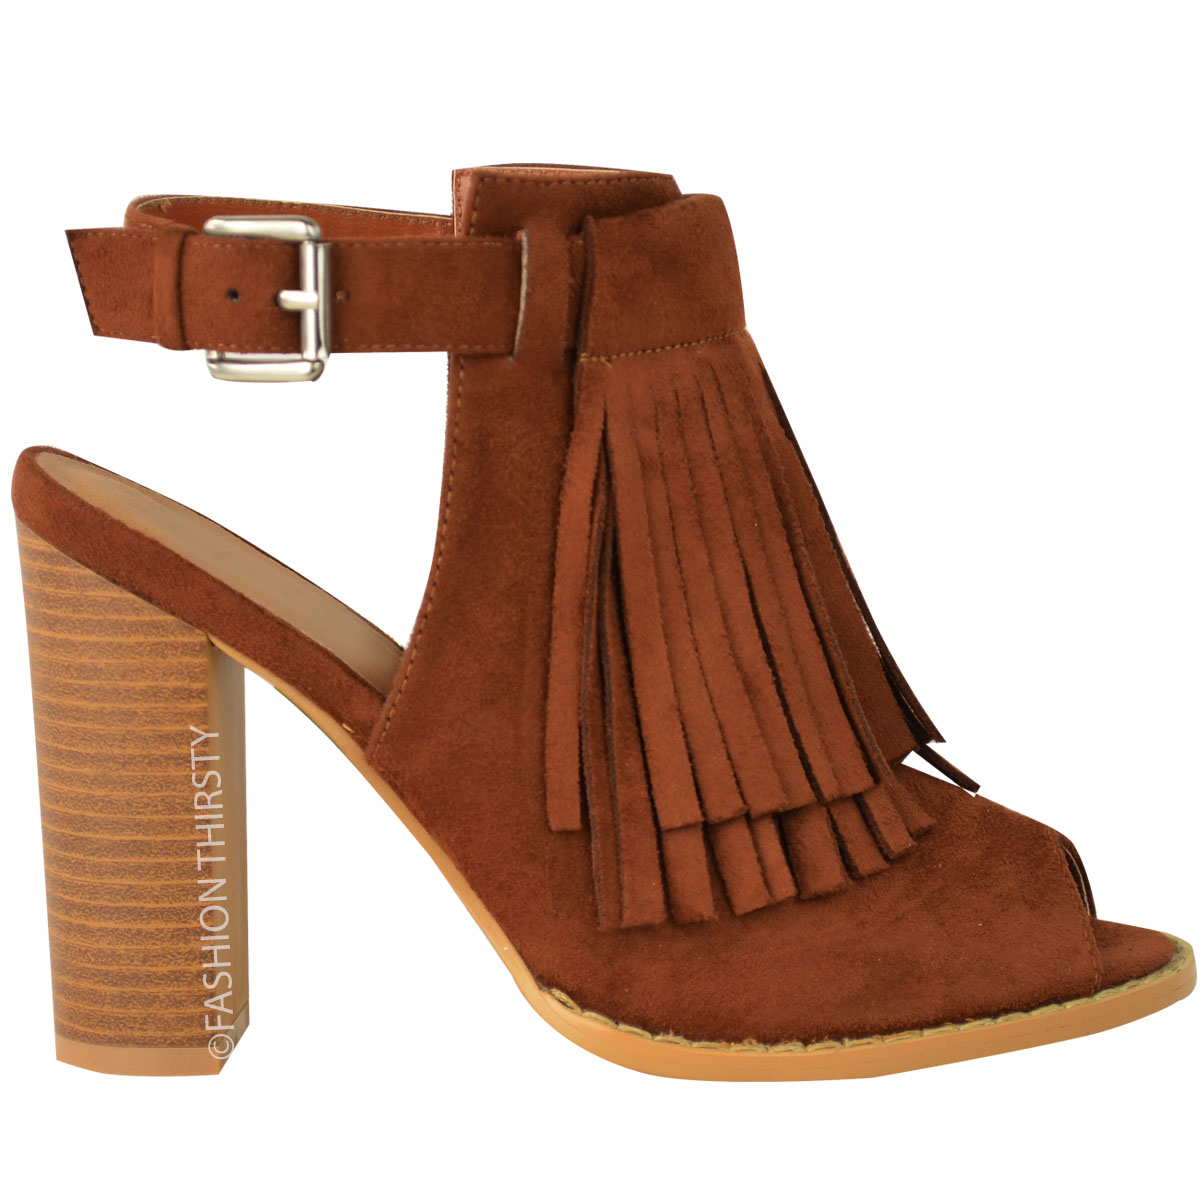 Ankle CASPAR Taupe Womens Boots SBO Tassel Vintage Get quick answers from Finlandia Caviar staff and past visitors. Note: your question will be posted publicly on the Questions & Answers page. Posting guidelines. Womens Boots CASPAR Ankle.